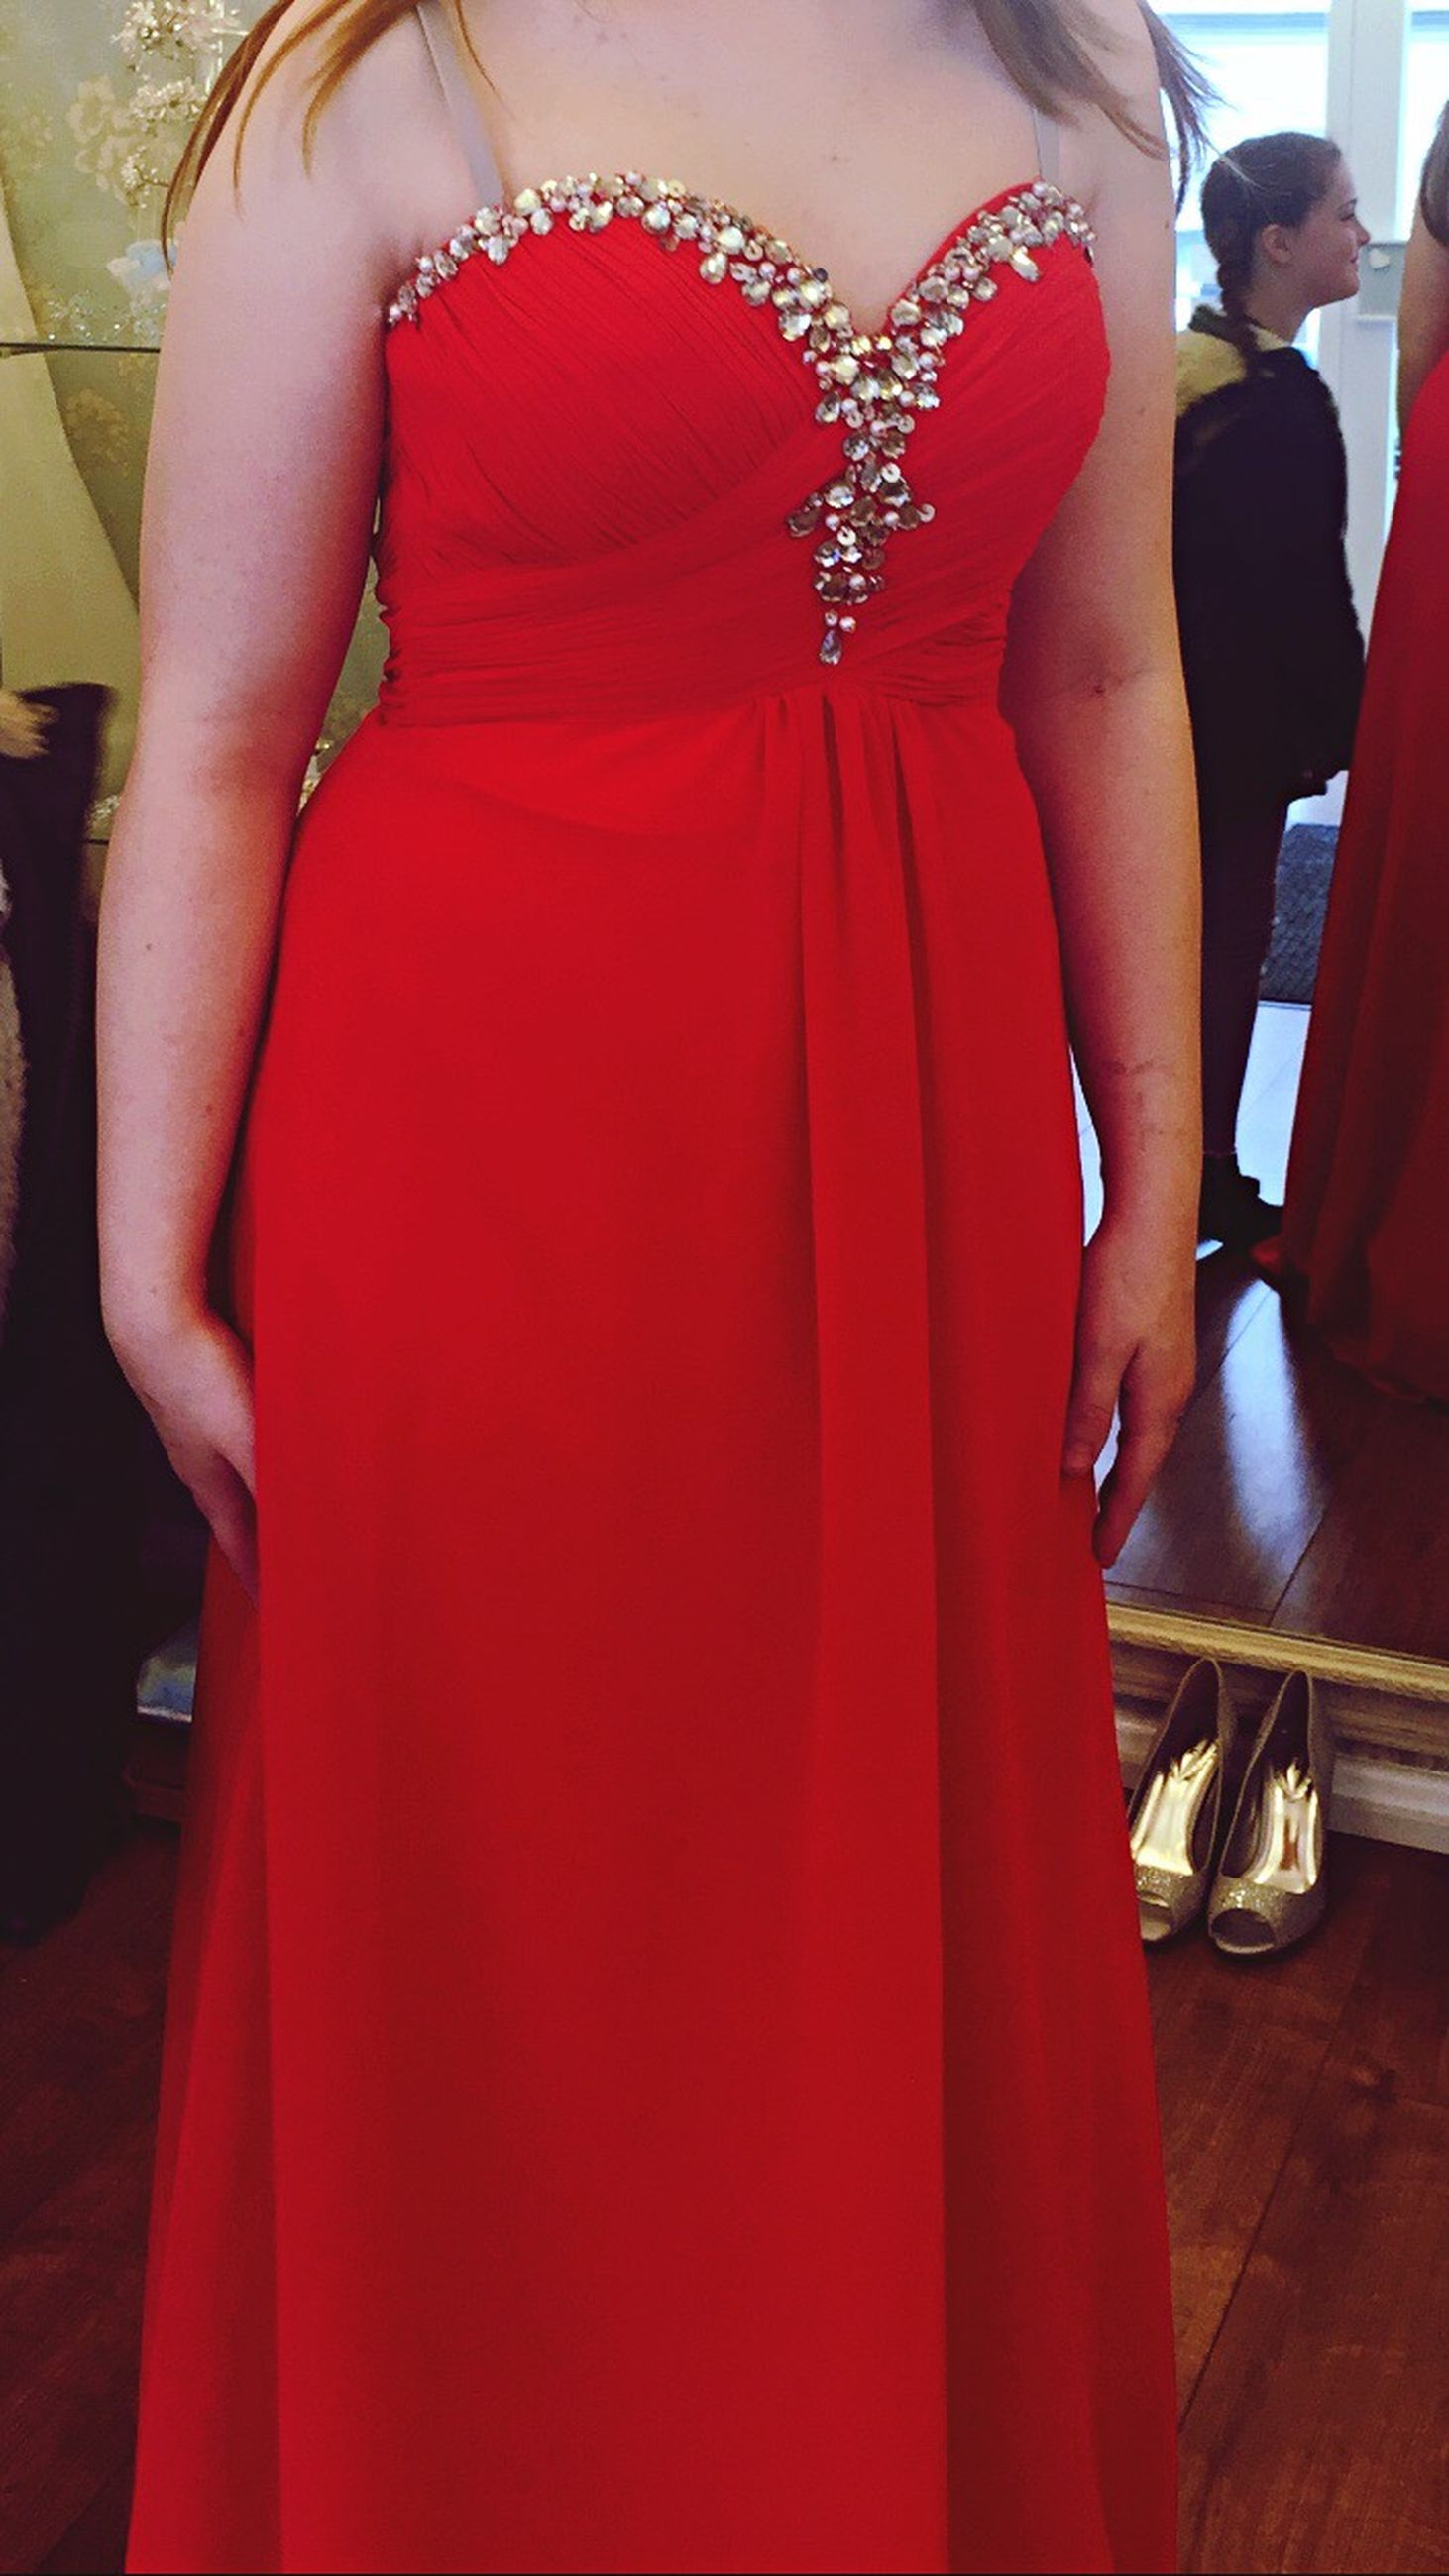 red, elegance, evening gown, adults only, women, glamour, people, indoors, adult, togetherness, well-dressed, day